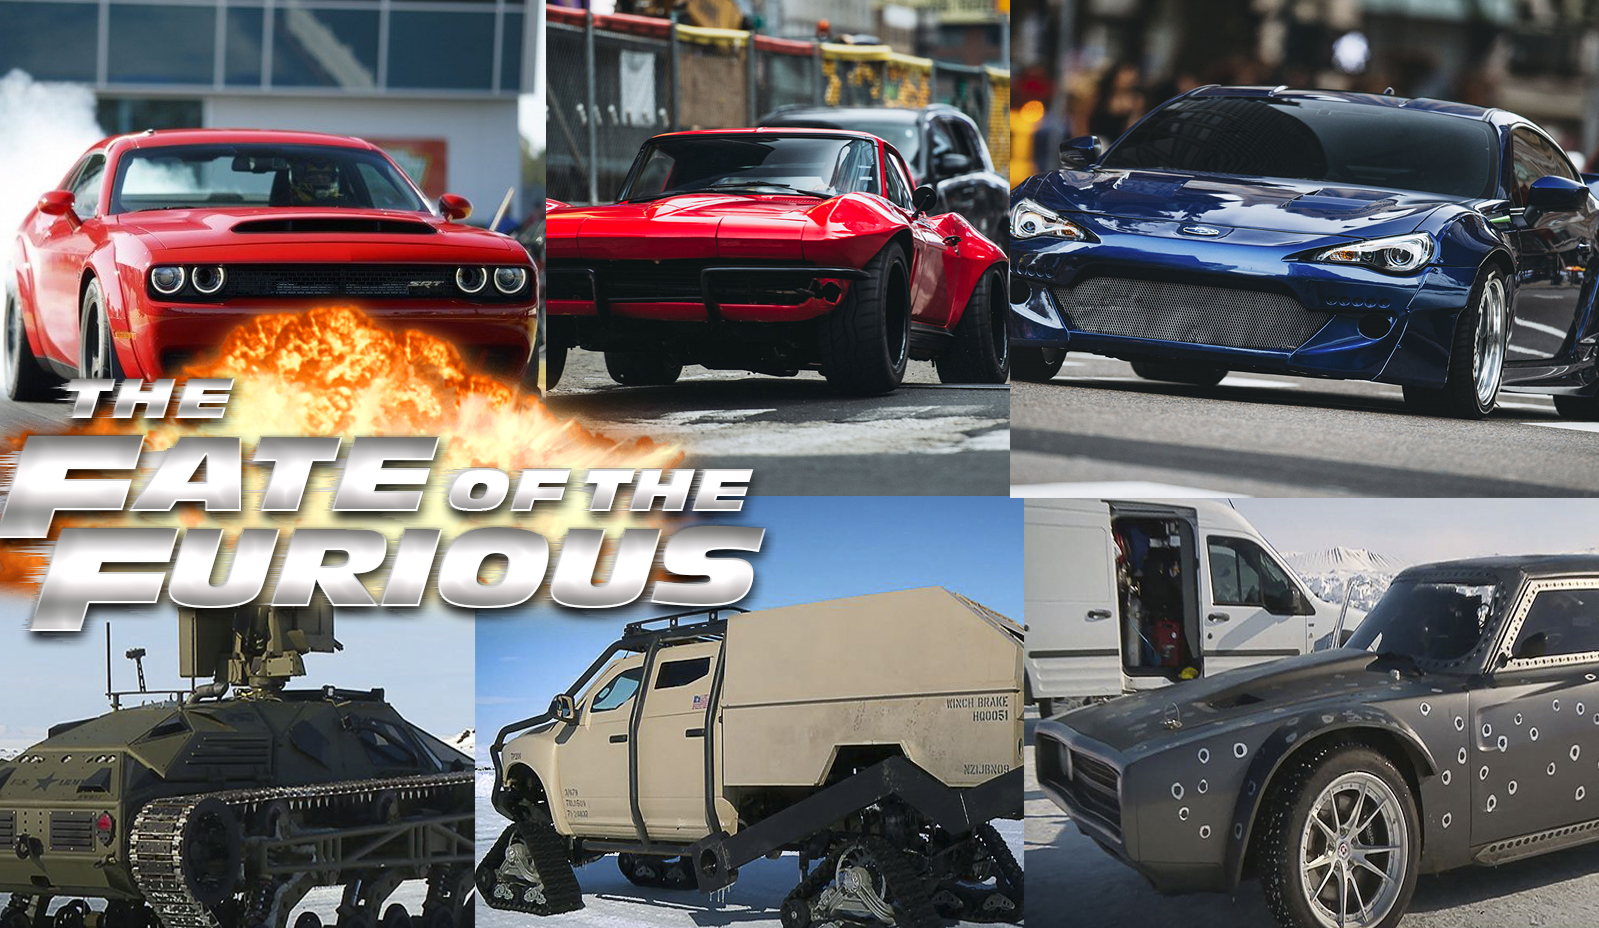 The 8 Great Of Fate The Cars Of The Fate Of The Furious